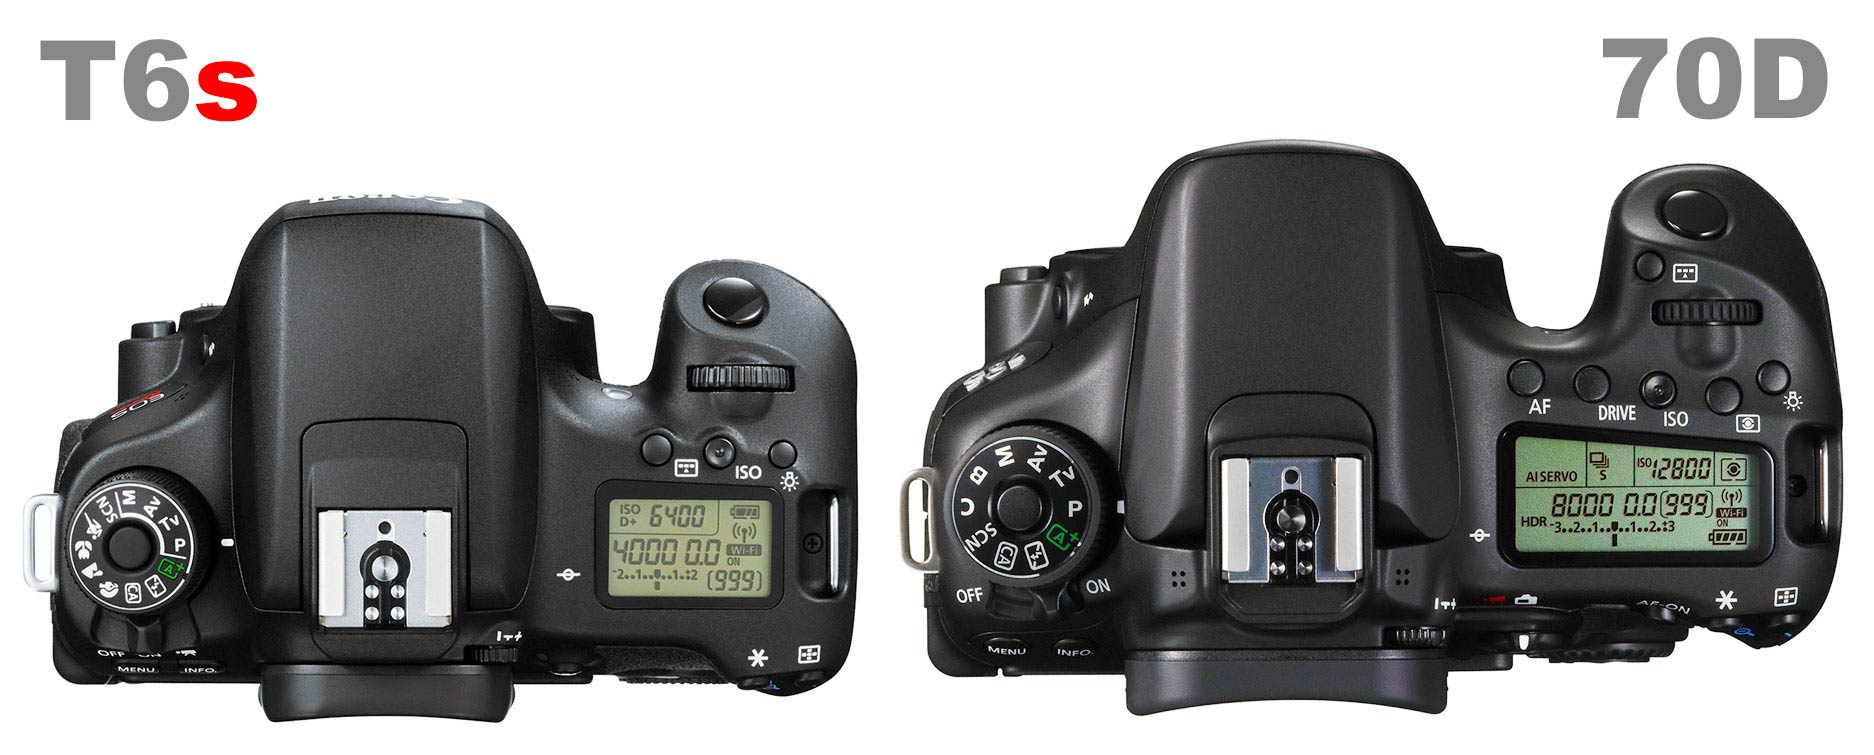 Canon T6s vs 70D: Which Should You Buy? - Light And Matter